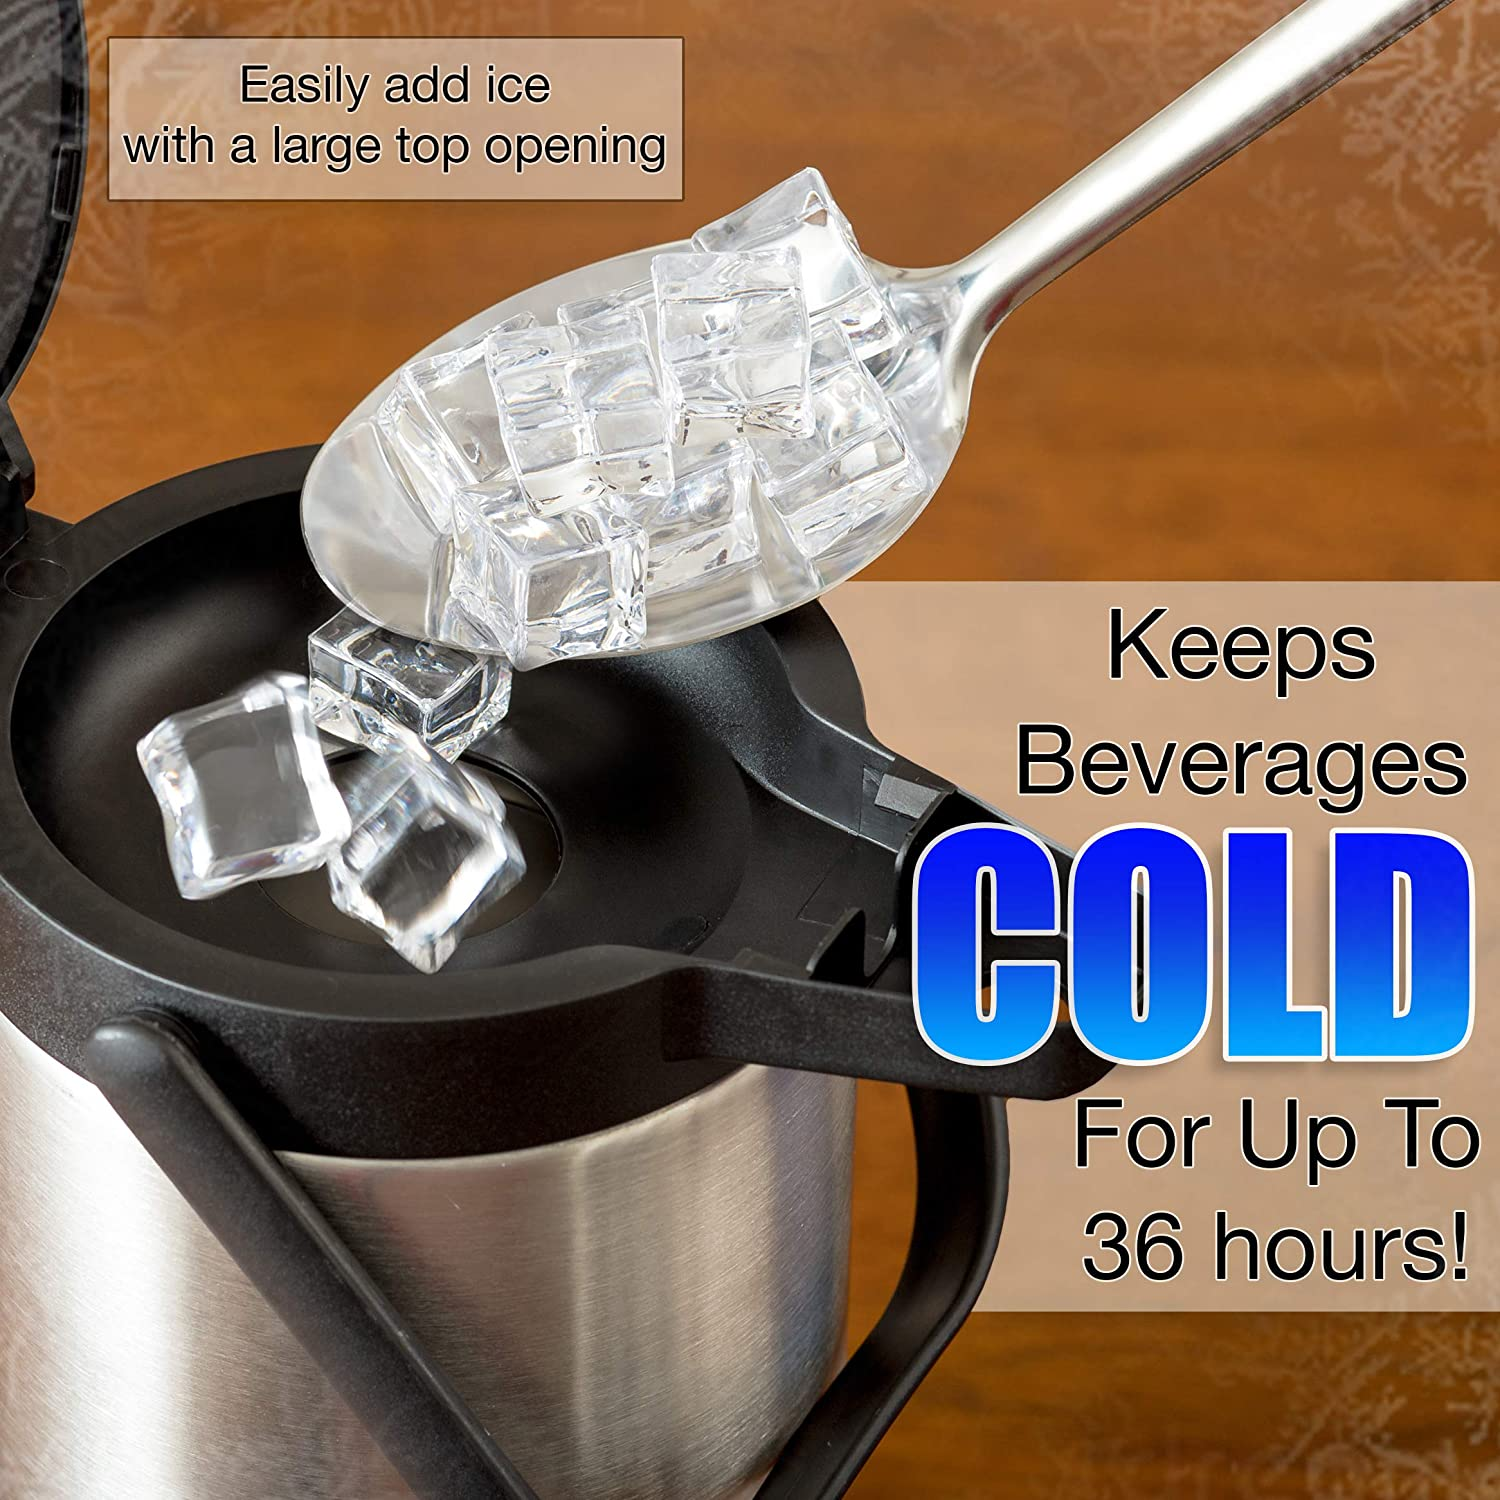 85oz 20-Hour Hot and 36-Hour Cold Insulation Coffee Water Iced Drinks | 15-Cup Insulated Thermos with Pump Beverage Dispenser Thermal Coffee Airpot Carafe Stainless Steel Urn for Tea